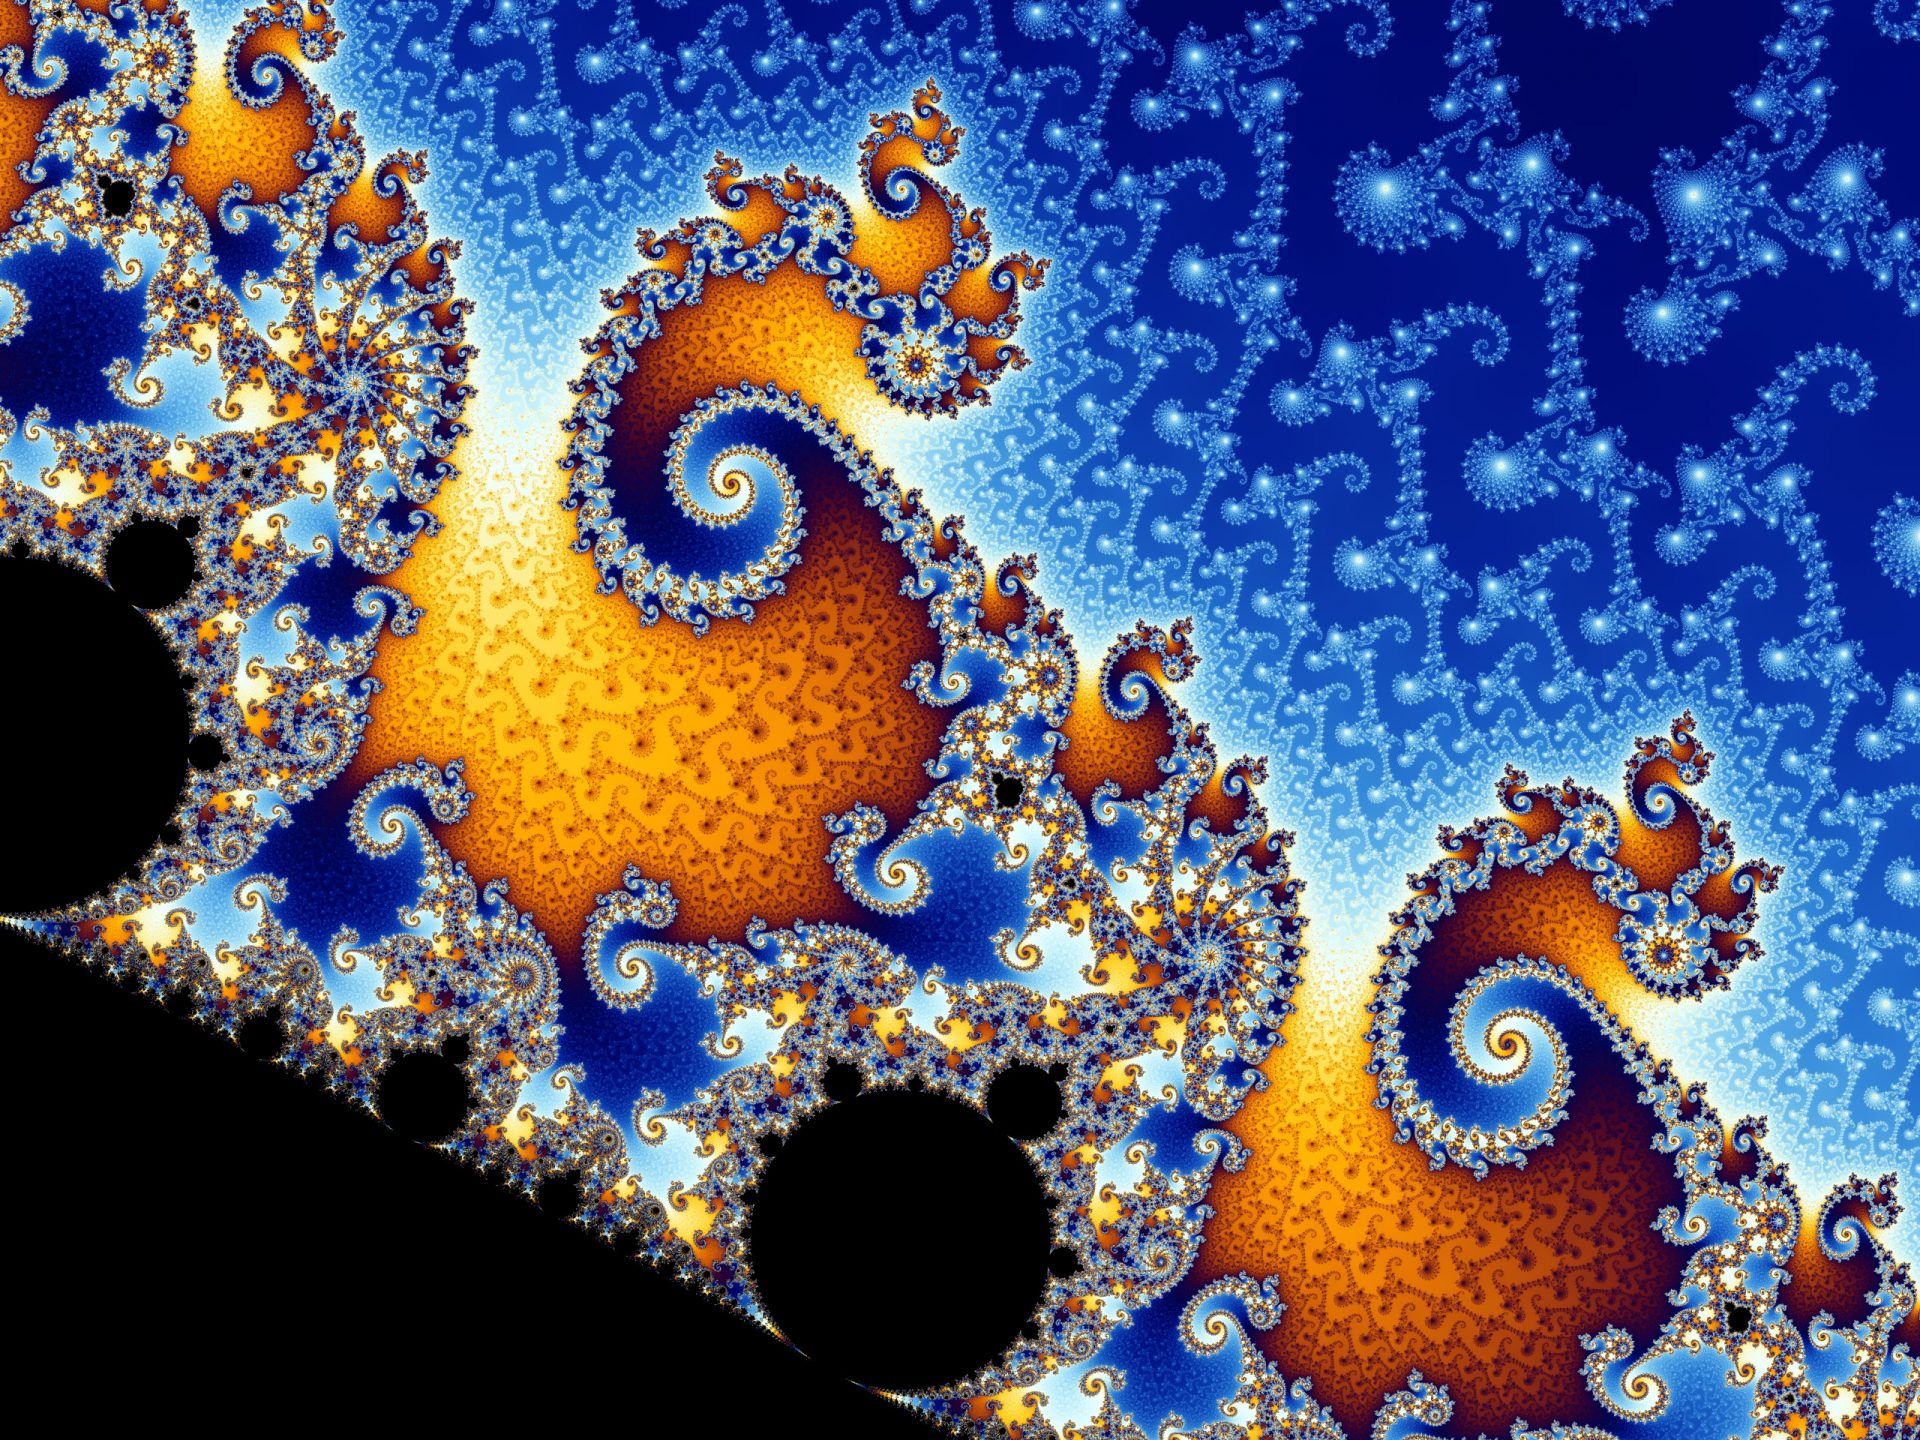 Mandelbrot Discovered Fractal Geometry Connects EVERYTHING In The Universe – How Did He Find This Pattern?